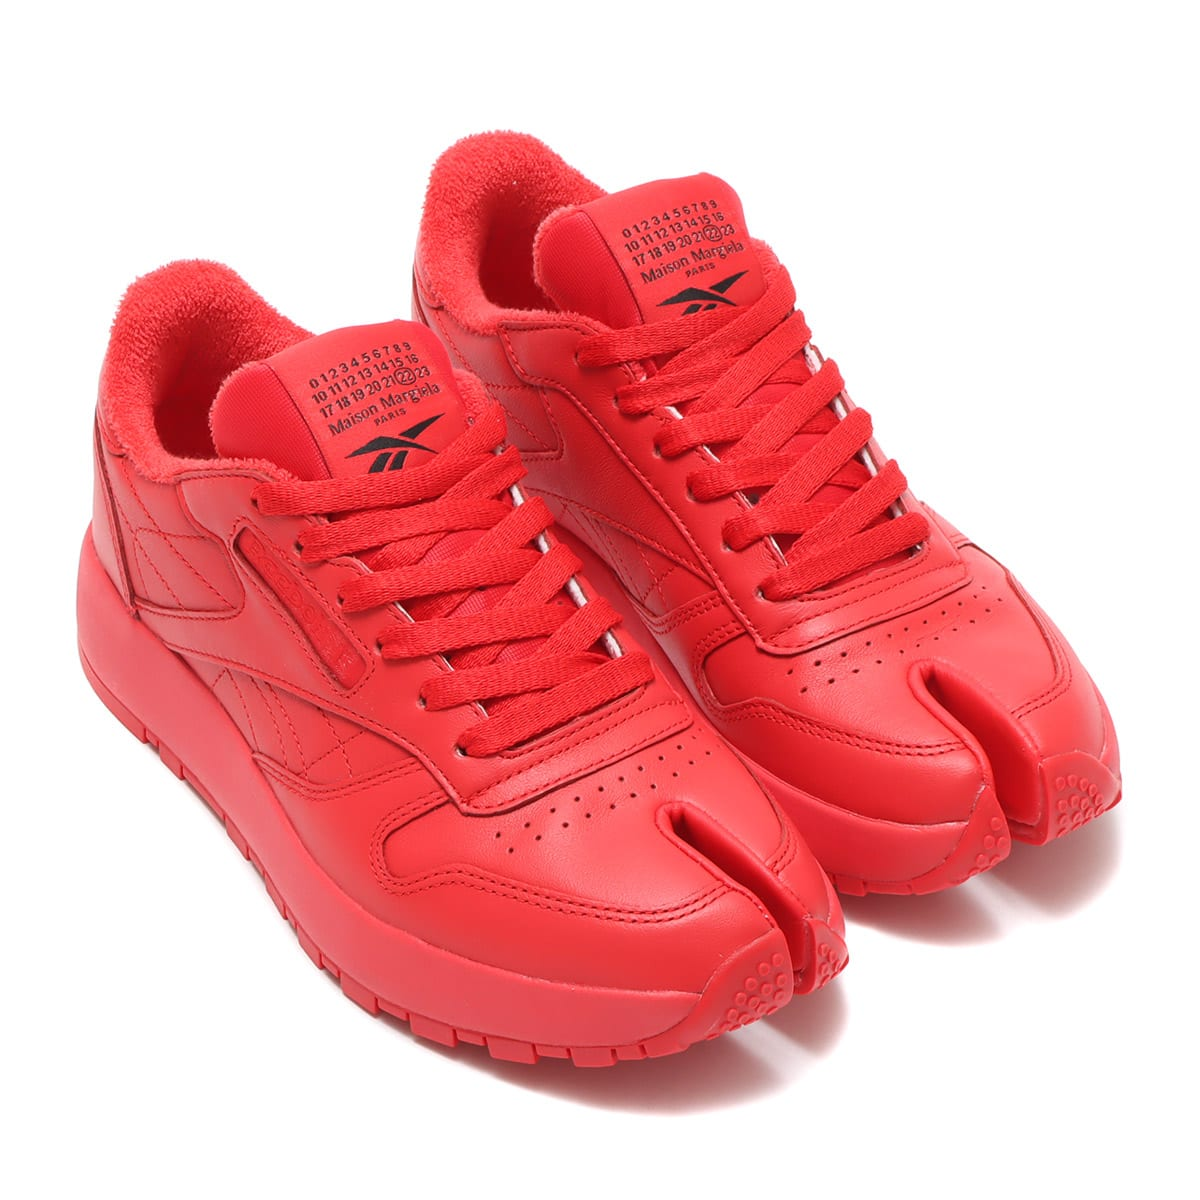 Reebok Collaboration Maison Margiela PROJECT 0 CL RED/WHITE/BLACK 21SS-S_photo_large